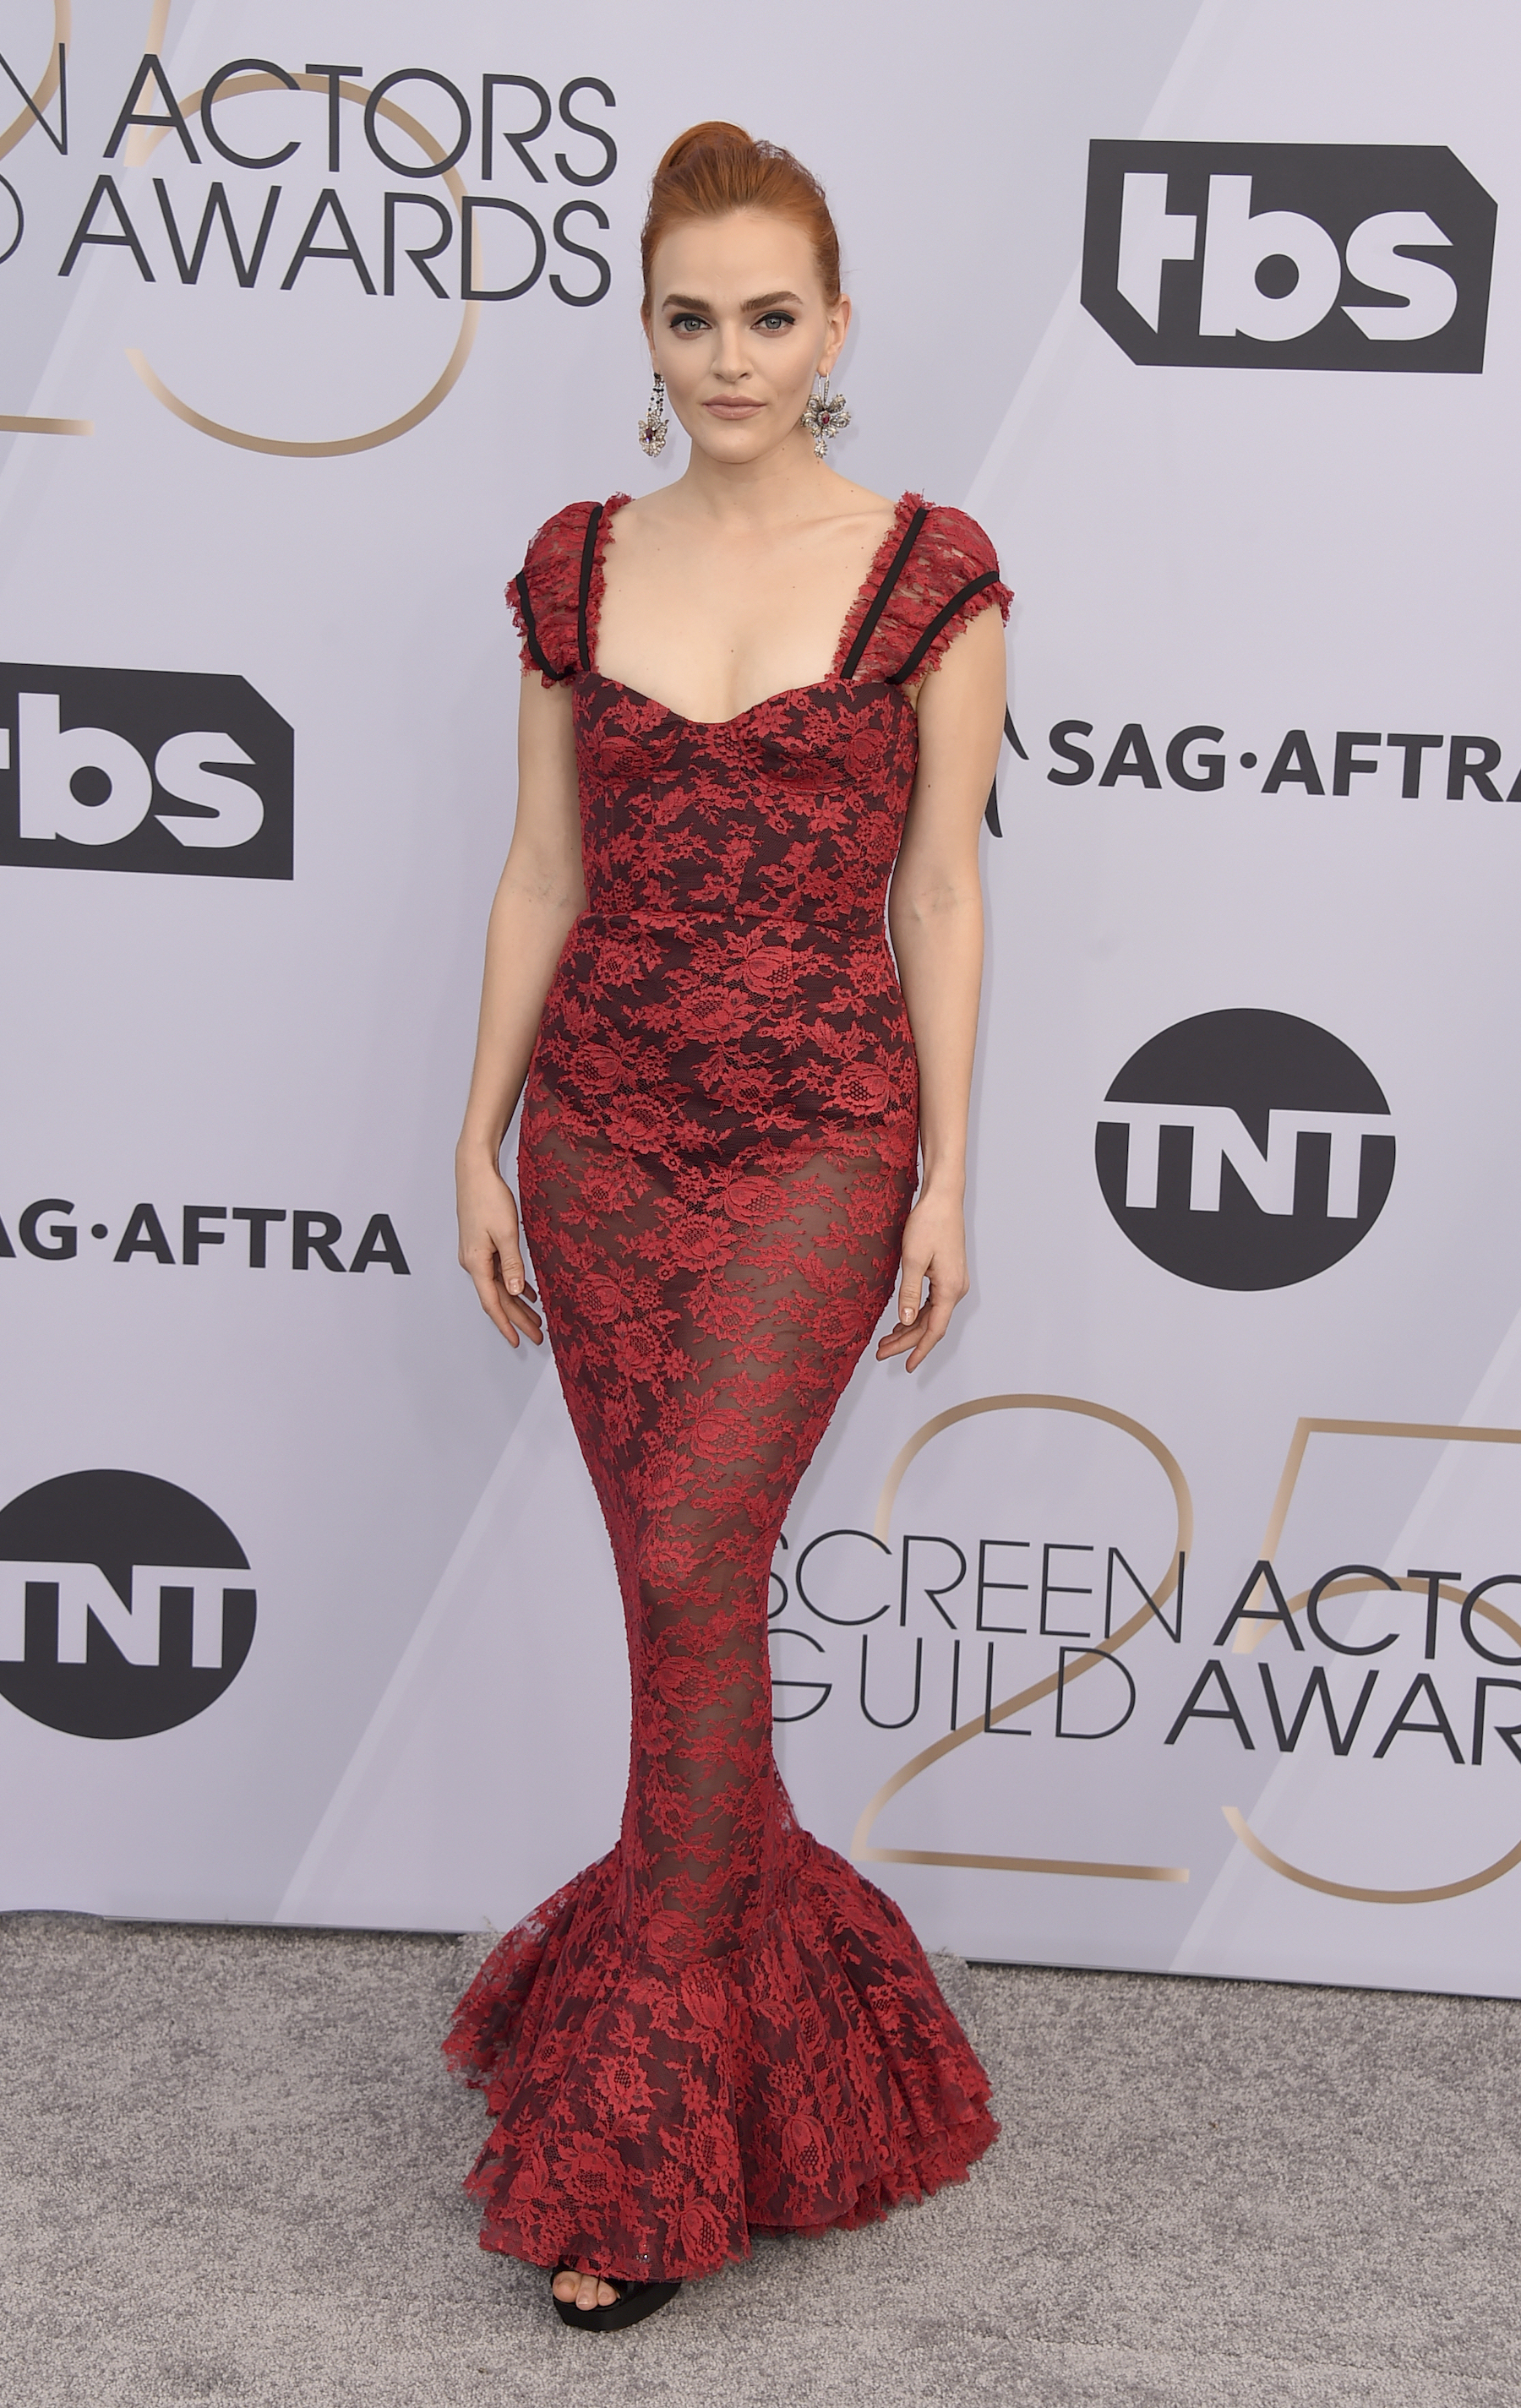 "<div class=""meta image-caption""><div class=""origin-logo origin-image ap""><span>AP</span></div><span class=""caption-text"">Madeline Brewer arrives at the 25th annual Screen Actors Guild Awards at the Shrine Auditorium & Expo Hall on Sunday, Jan. 27, 2019, in Los Angeles. (Jordan Strauss/Invision/AP)</span></div>"